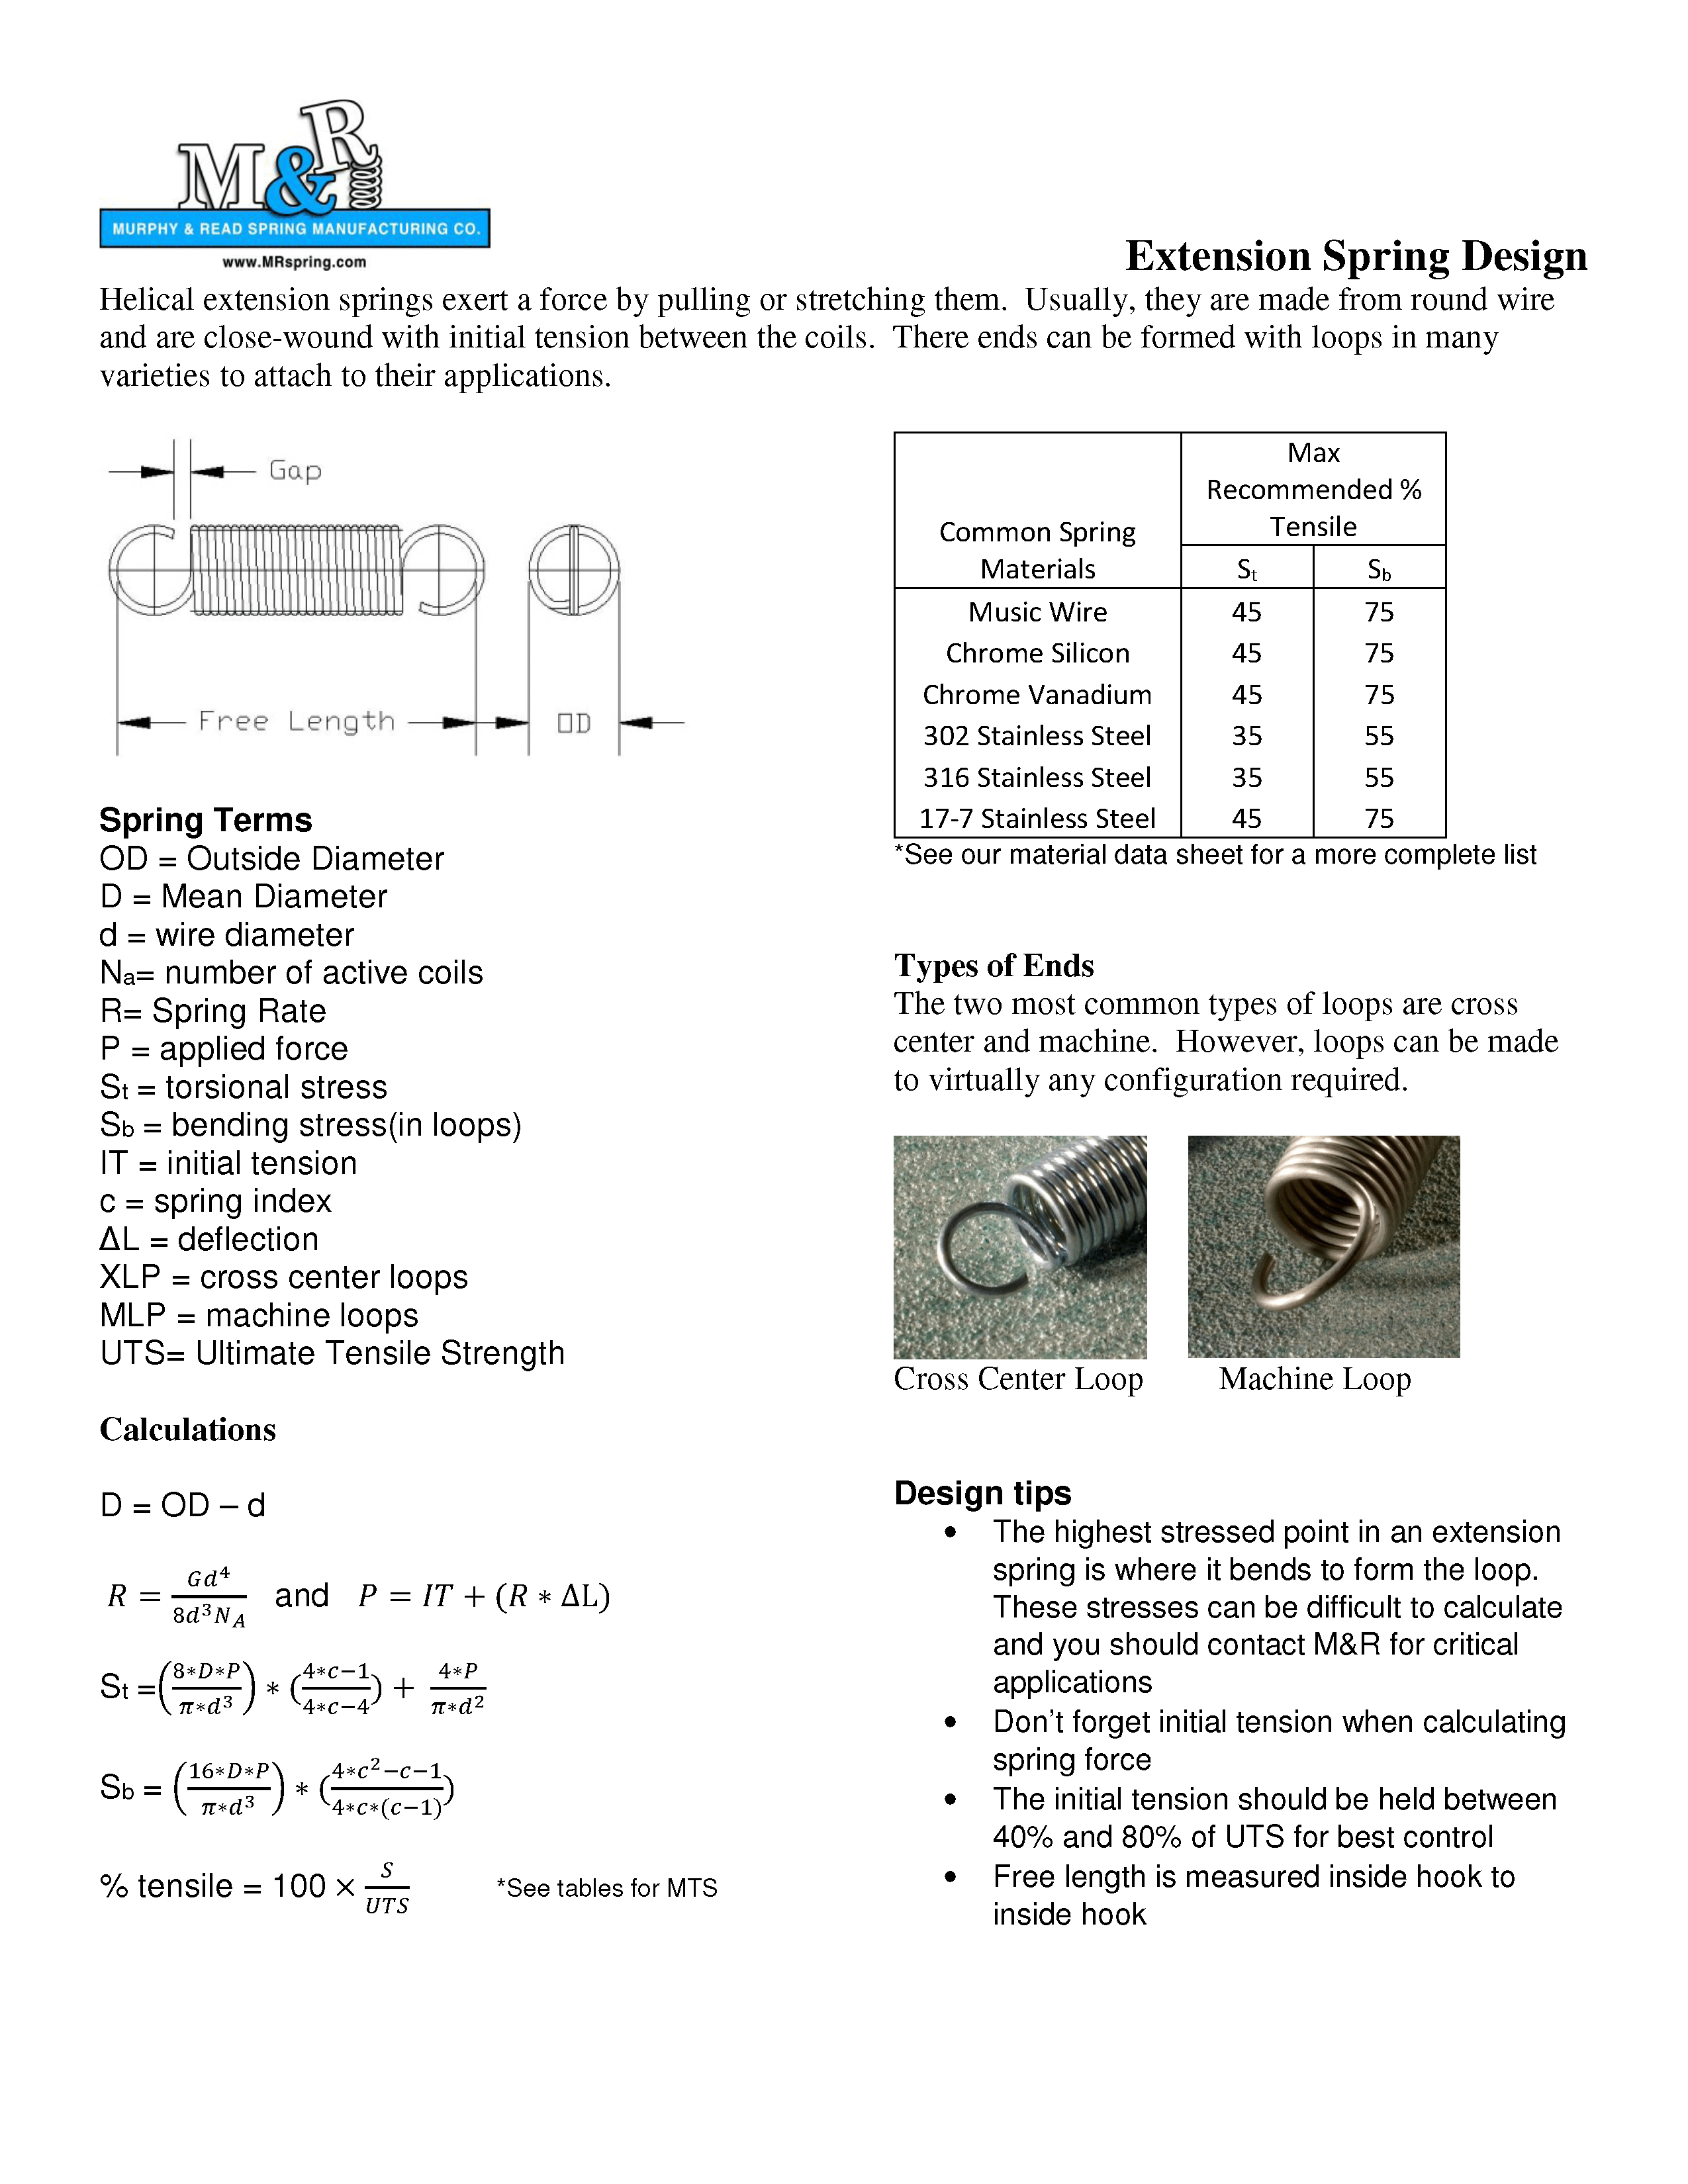 Extension Spring Design Info_Page_1